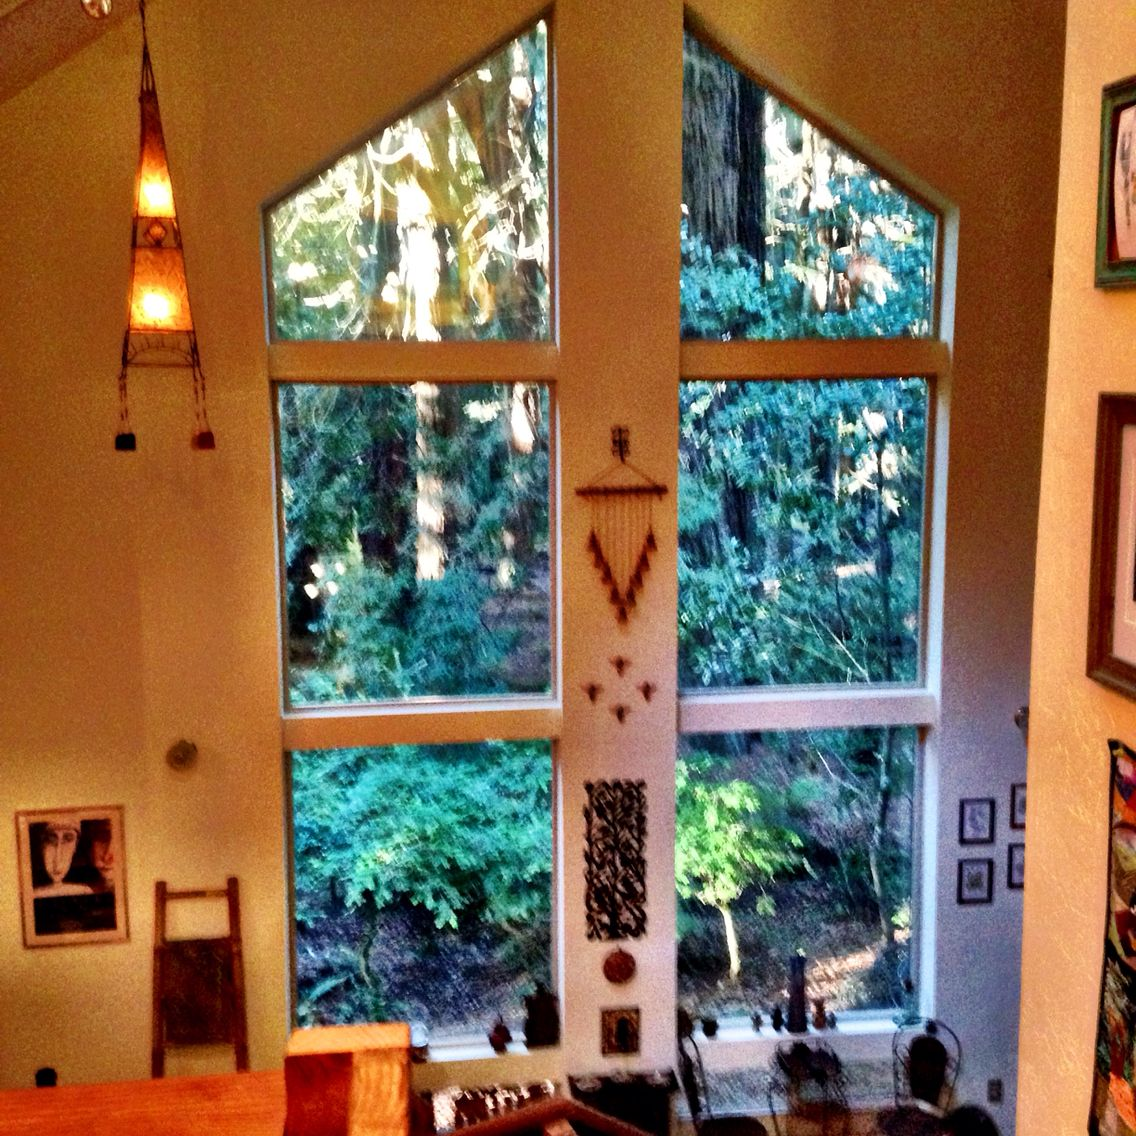 Windows let the forest in. Home of artist Dayle Doroshow